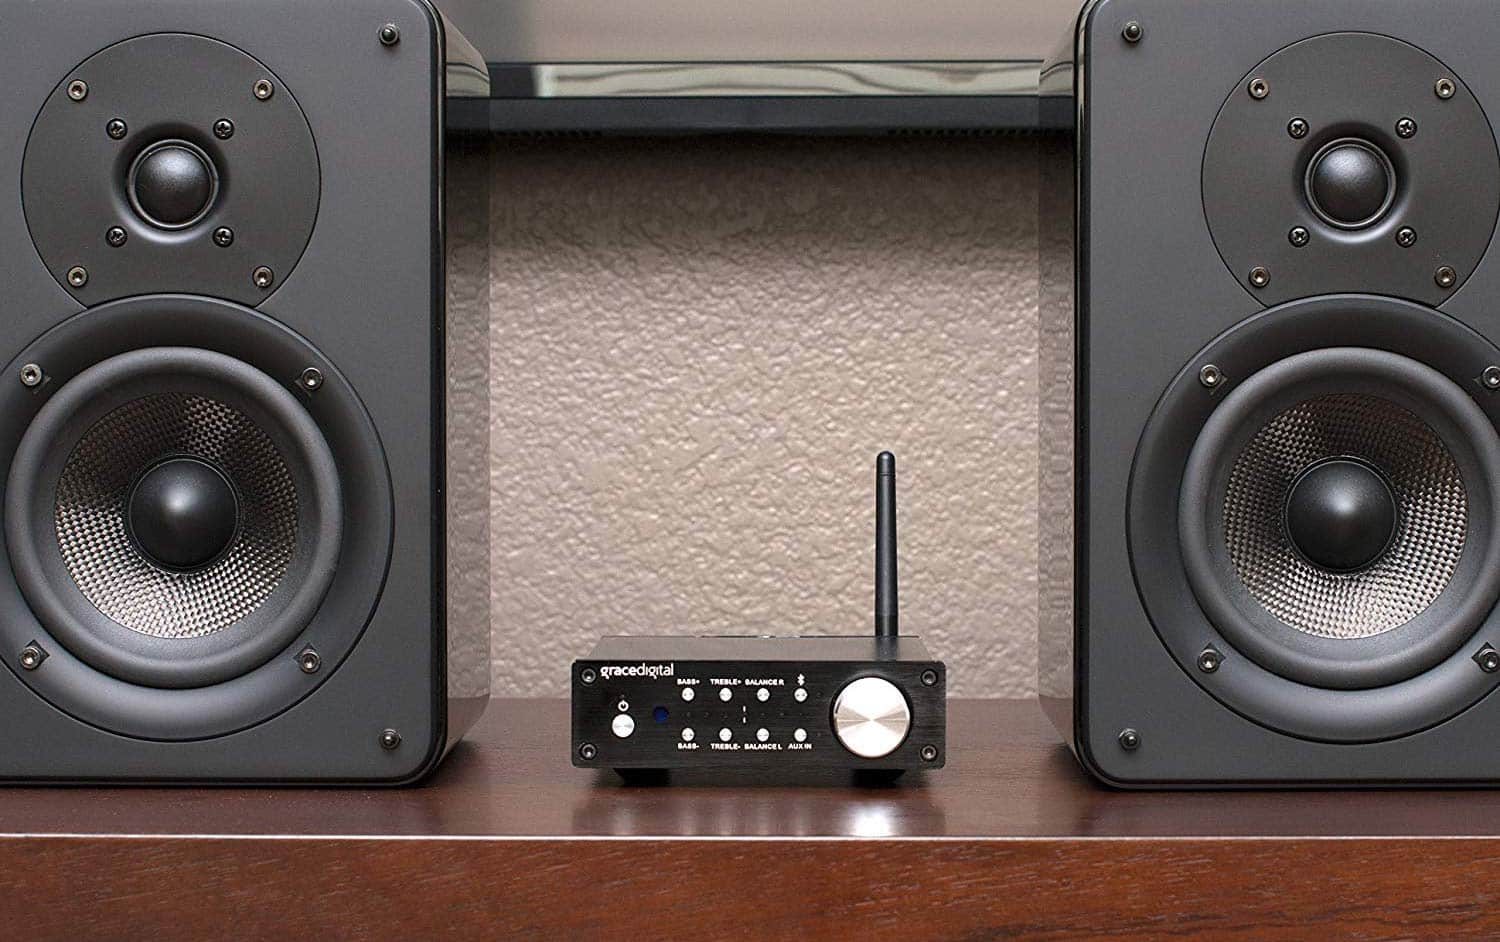 Top 10 Best Integrated Amplifiers in 2019 - Reviews & Guide